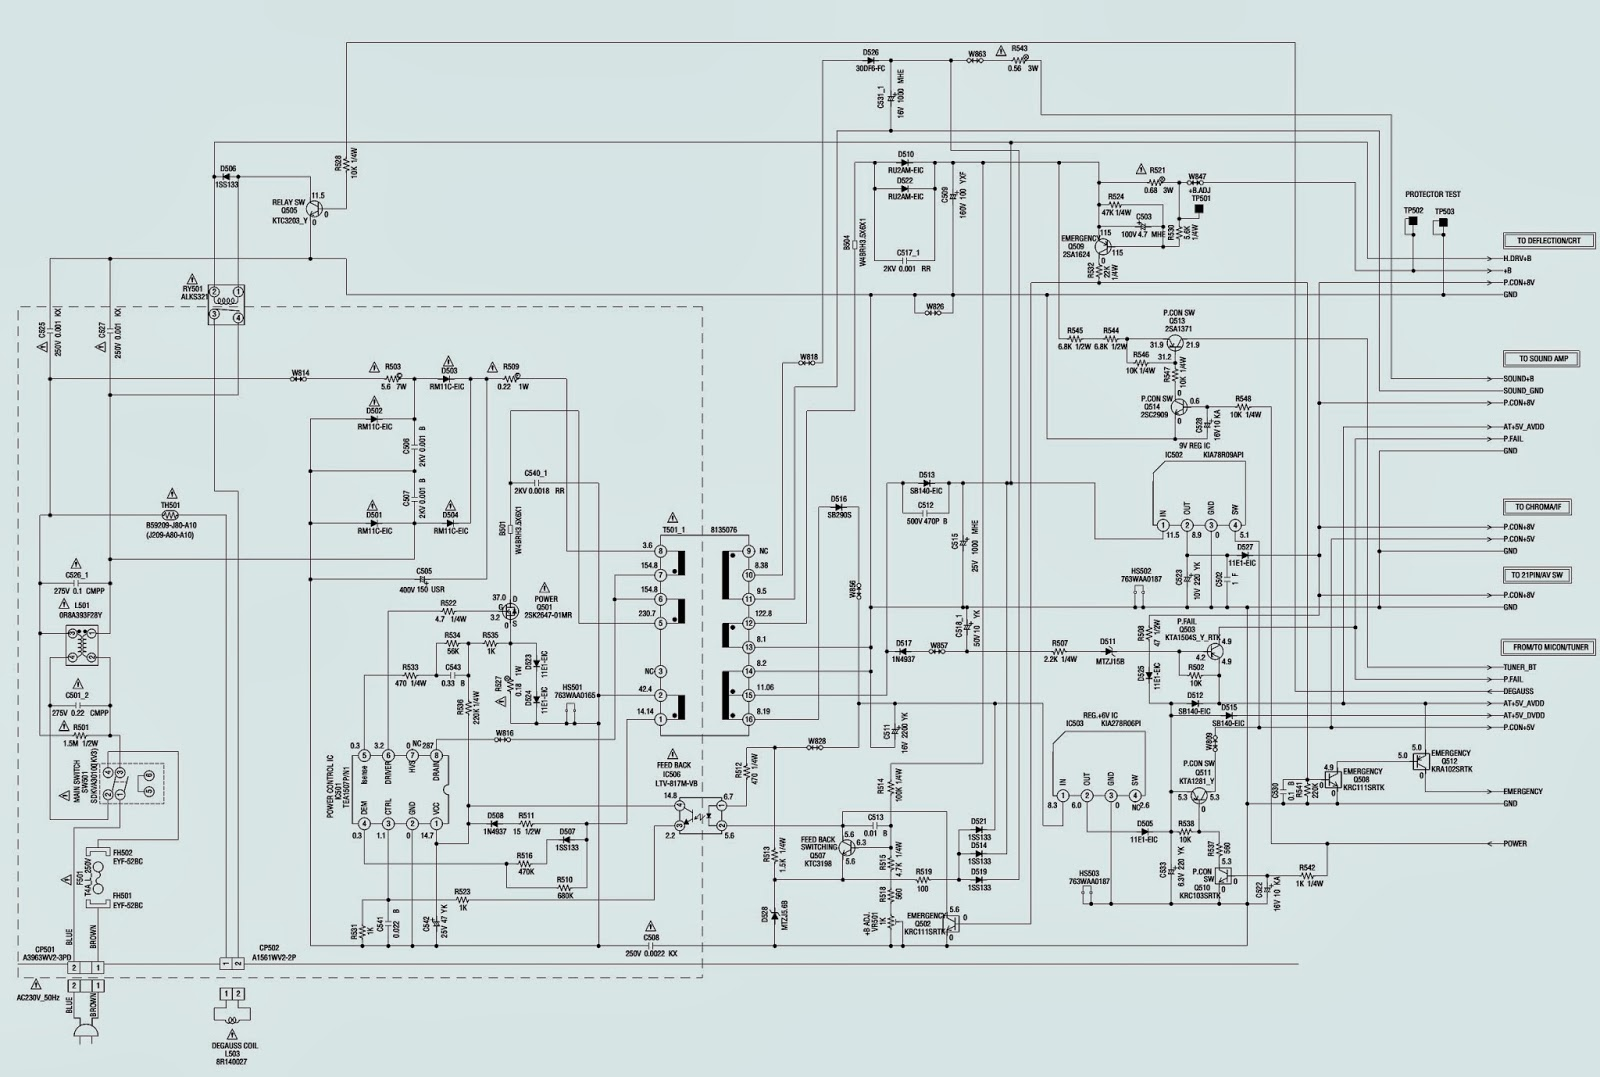 Smps Schematic Diagram 3 Speed Fan Switch 4 Wires Toshiba 15v11f Ctv Power Supply